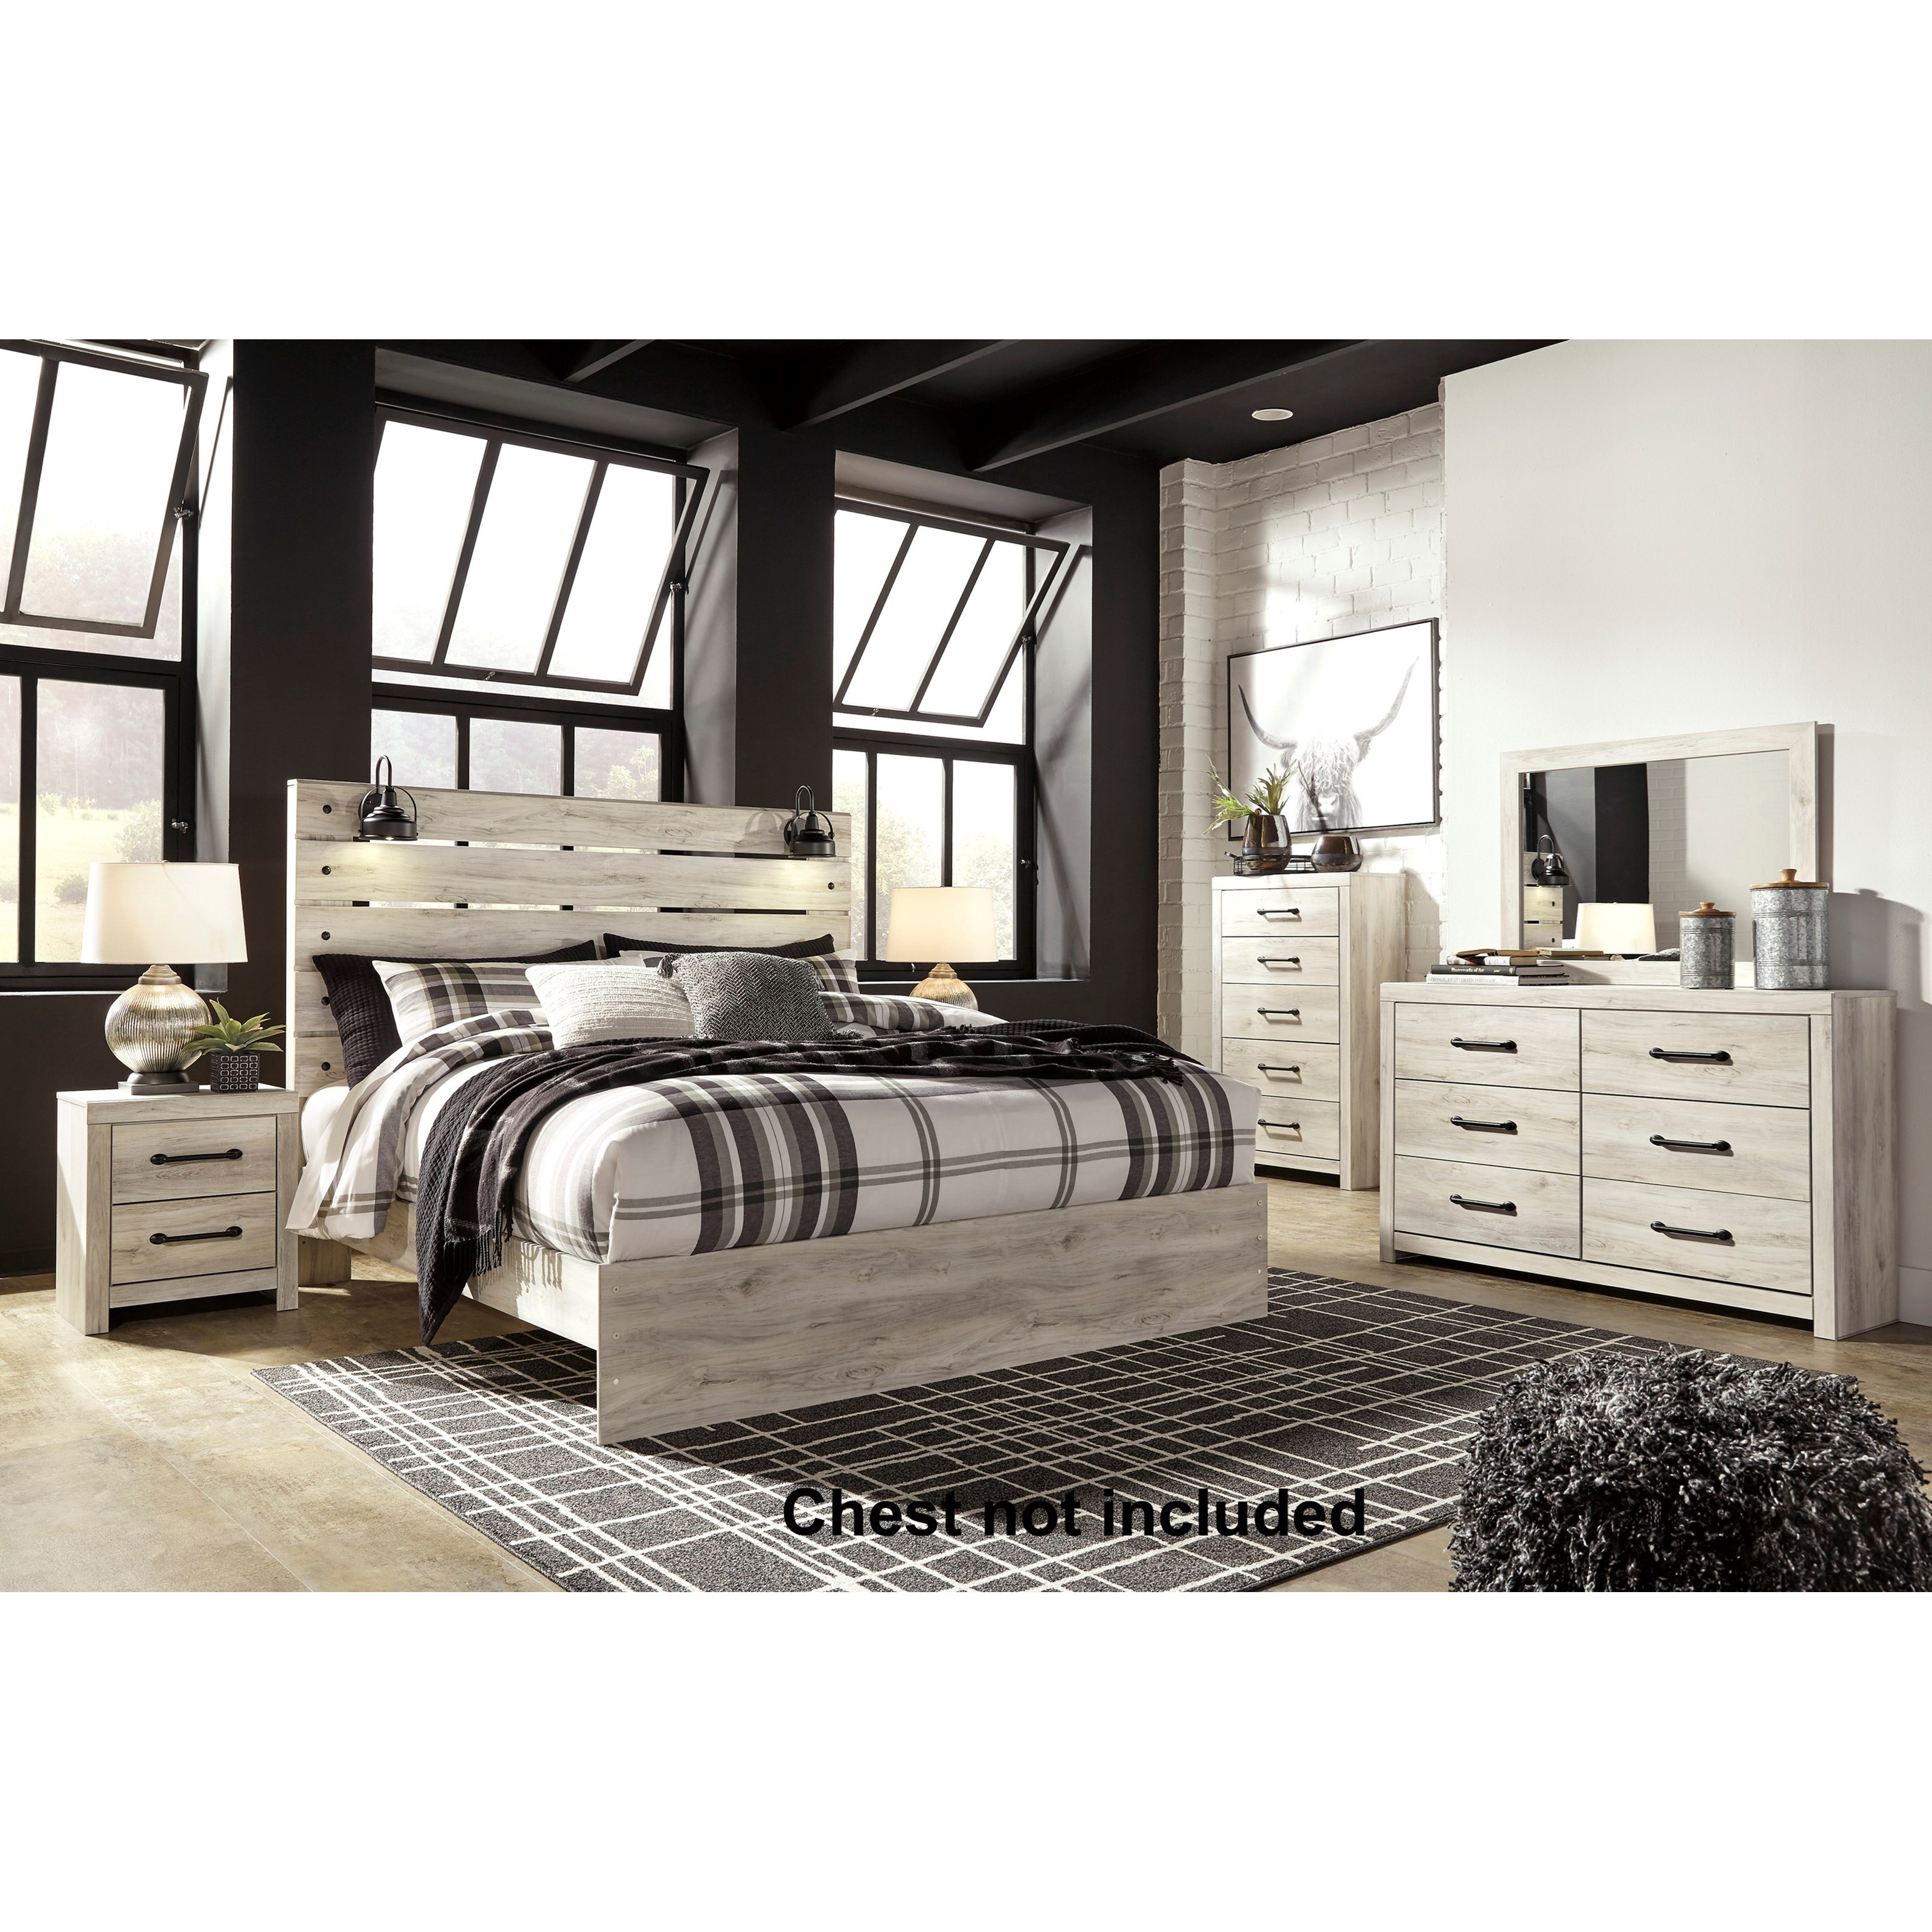 Cambeck King Bedroom Group by Signature Design by Ashley at Beck's Furniture